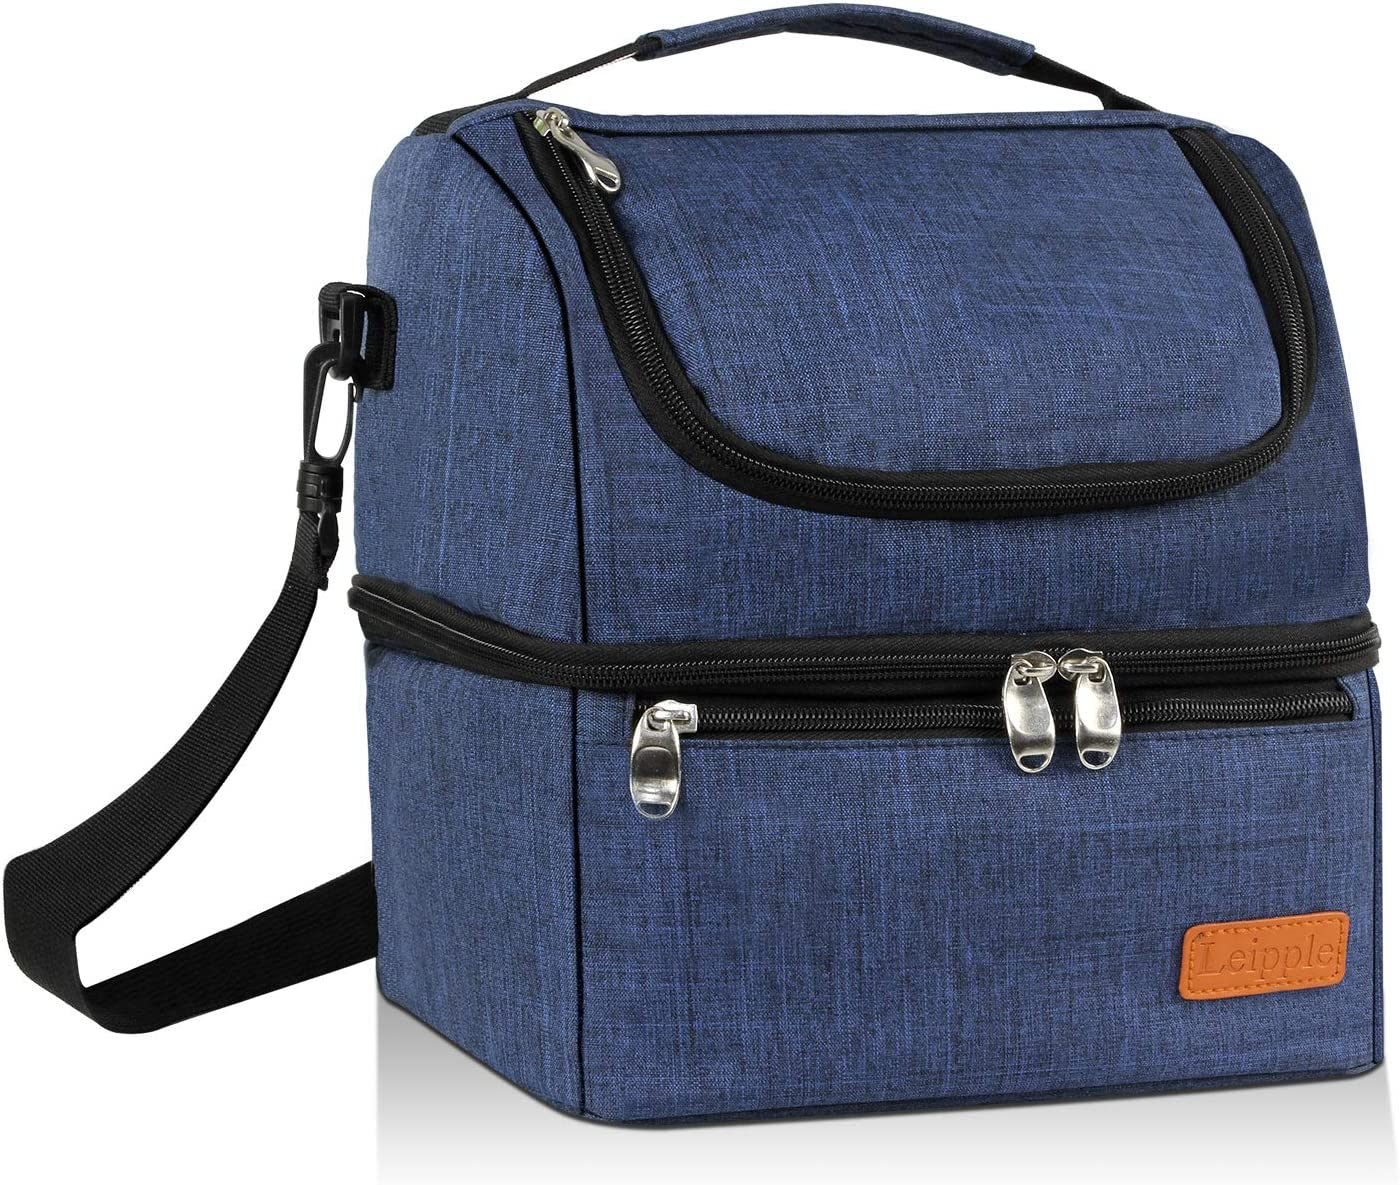 Leipple Lunch Bag for Men Women - Cooler Bag Tote Insulated Thermal Leakproof Lunch Box with Shoulder Strap Wide Opening for Office School Travel Picnic Camping(Blue)